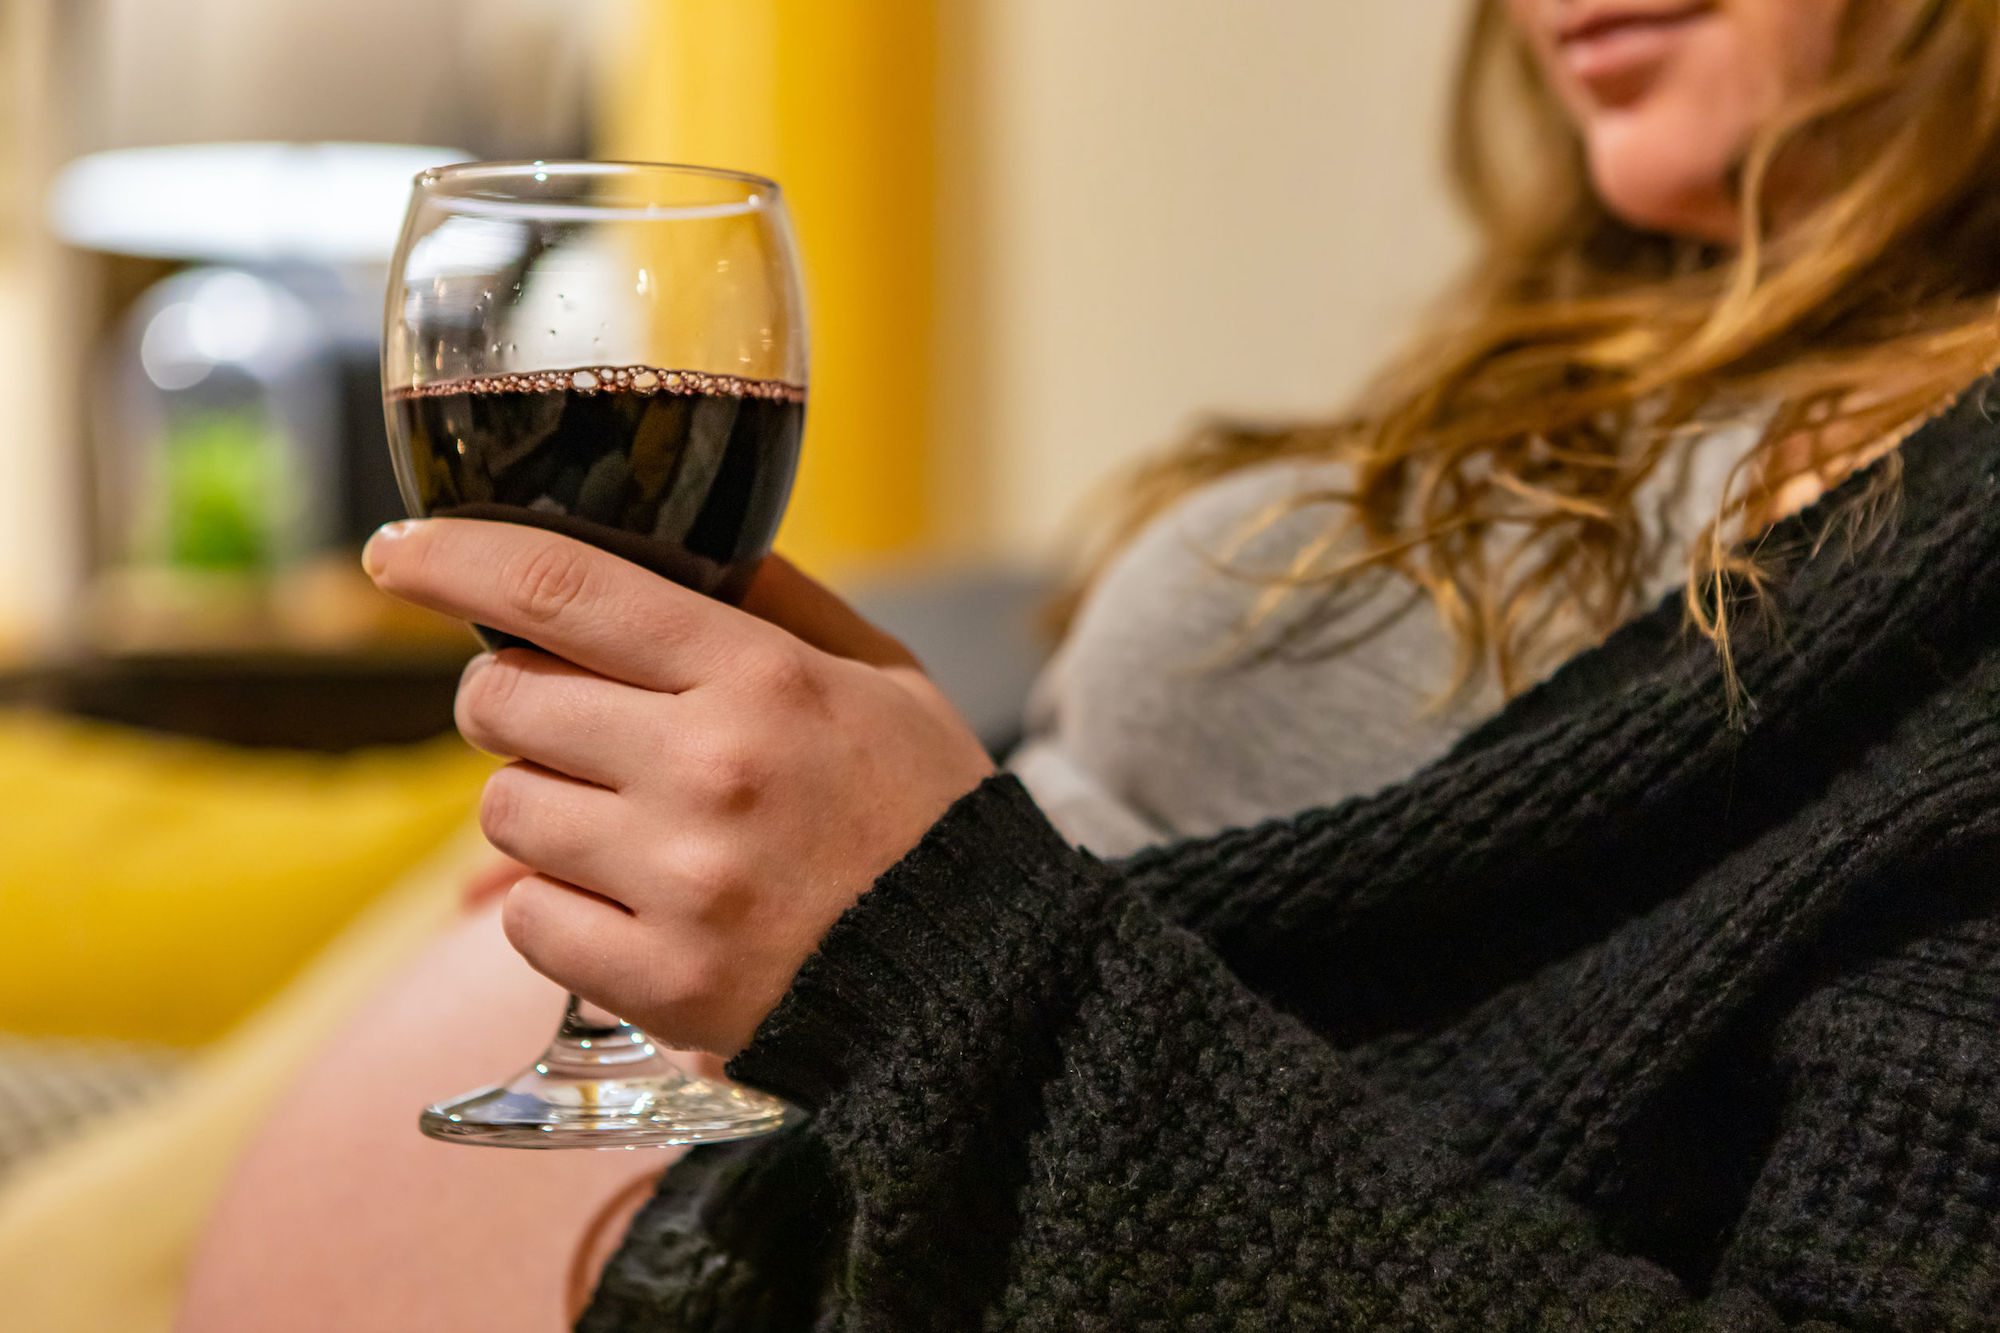 A Possible Treatment for Fetal Alcohol Syndrome